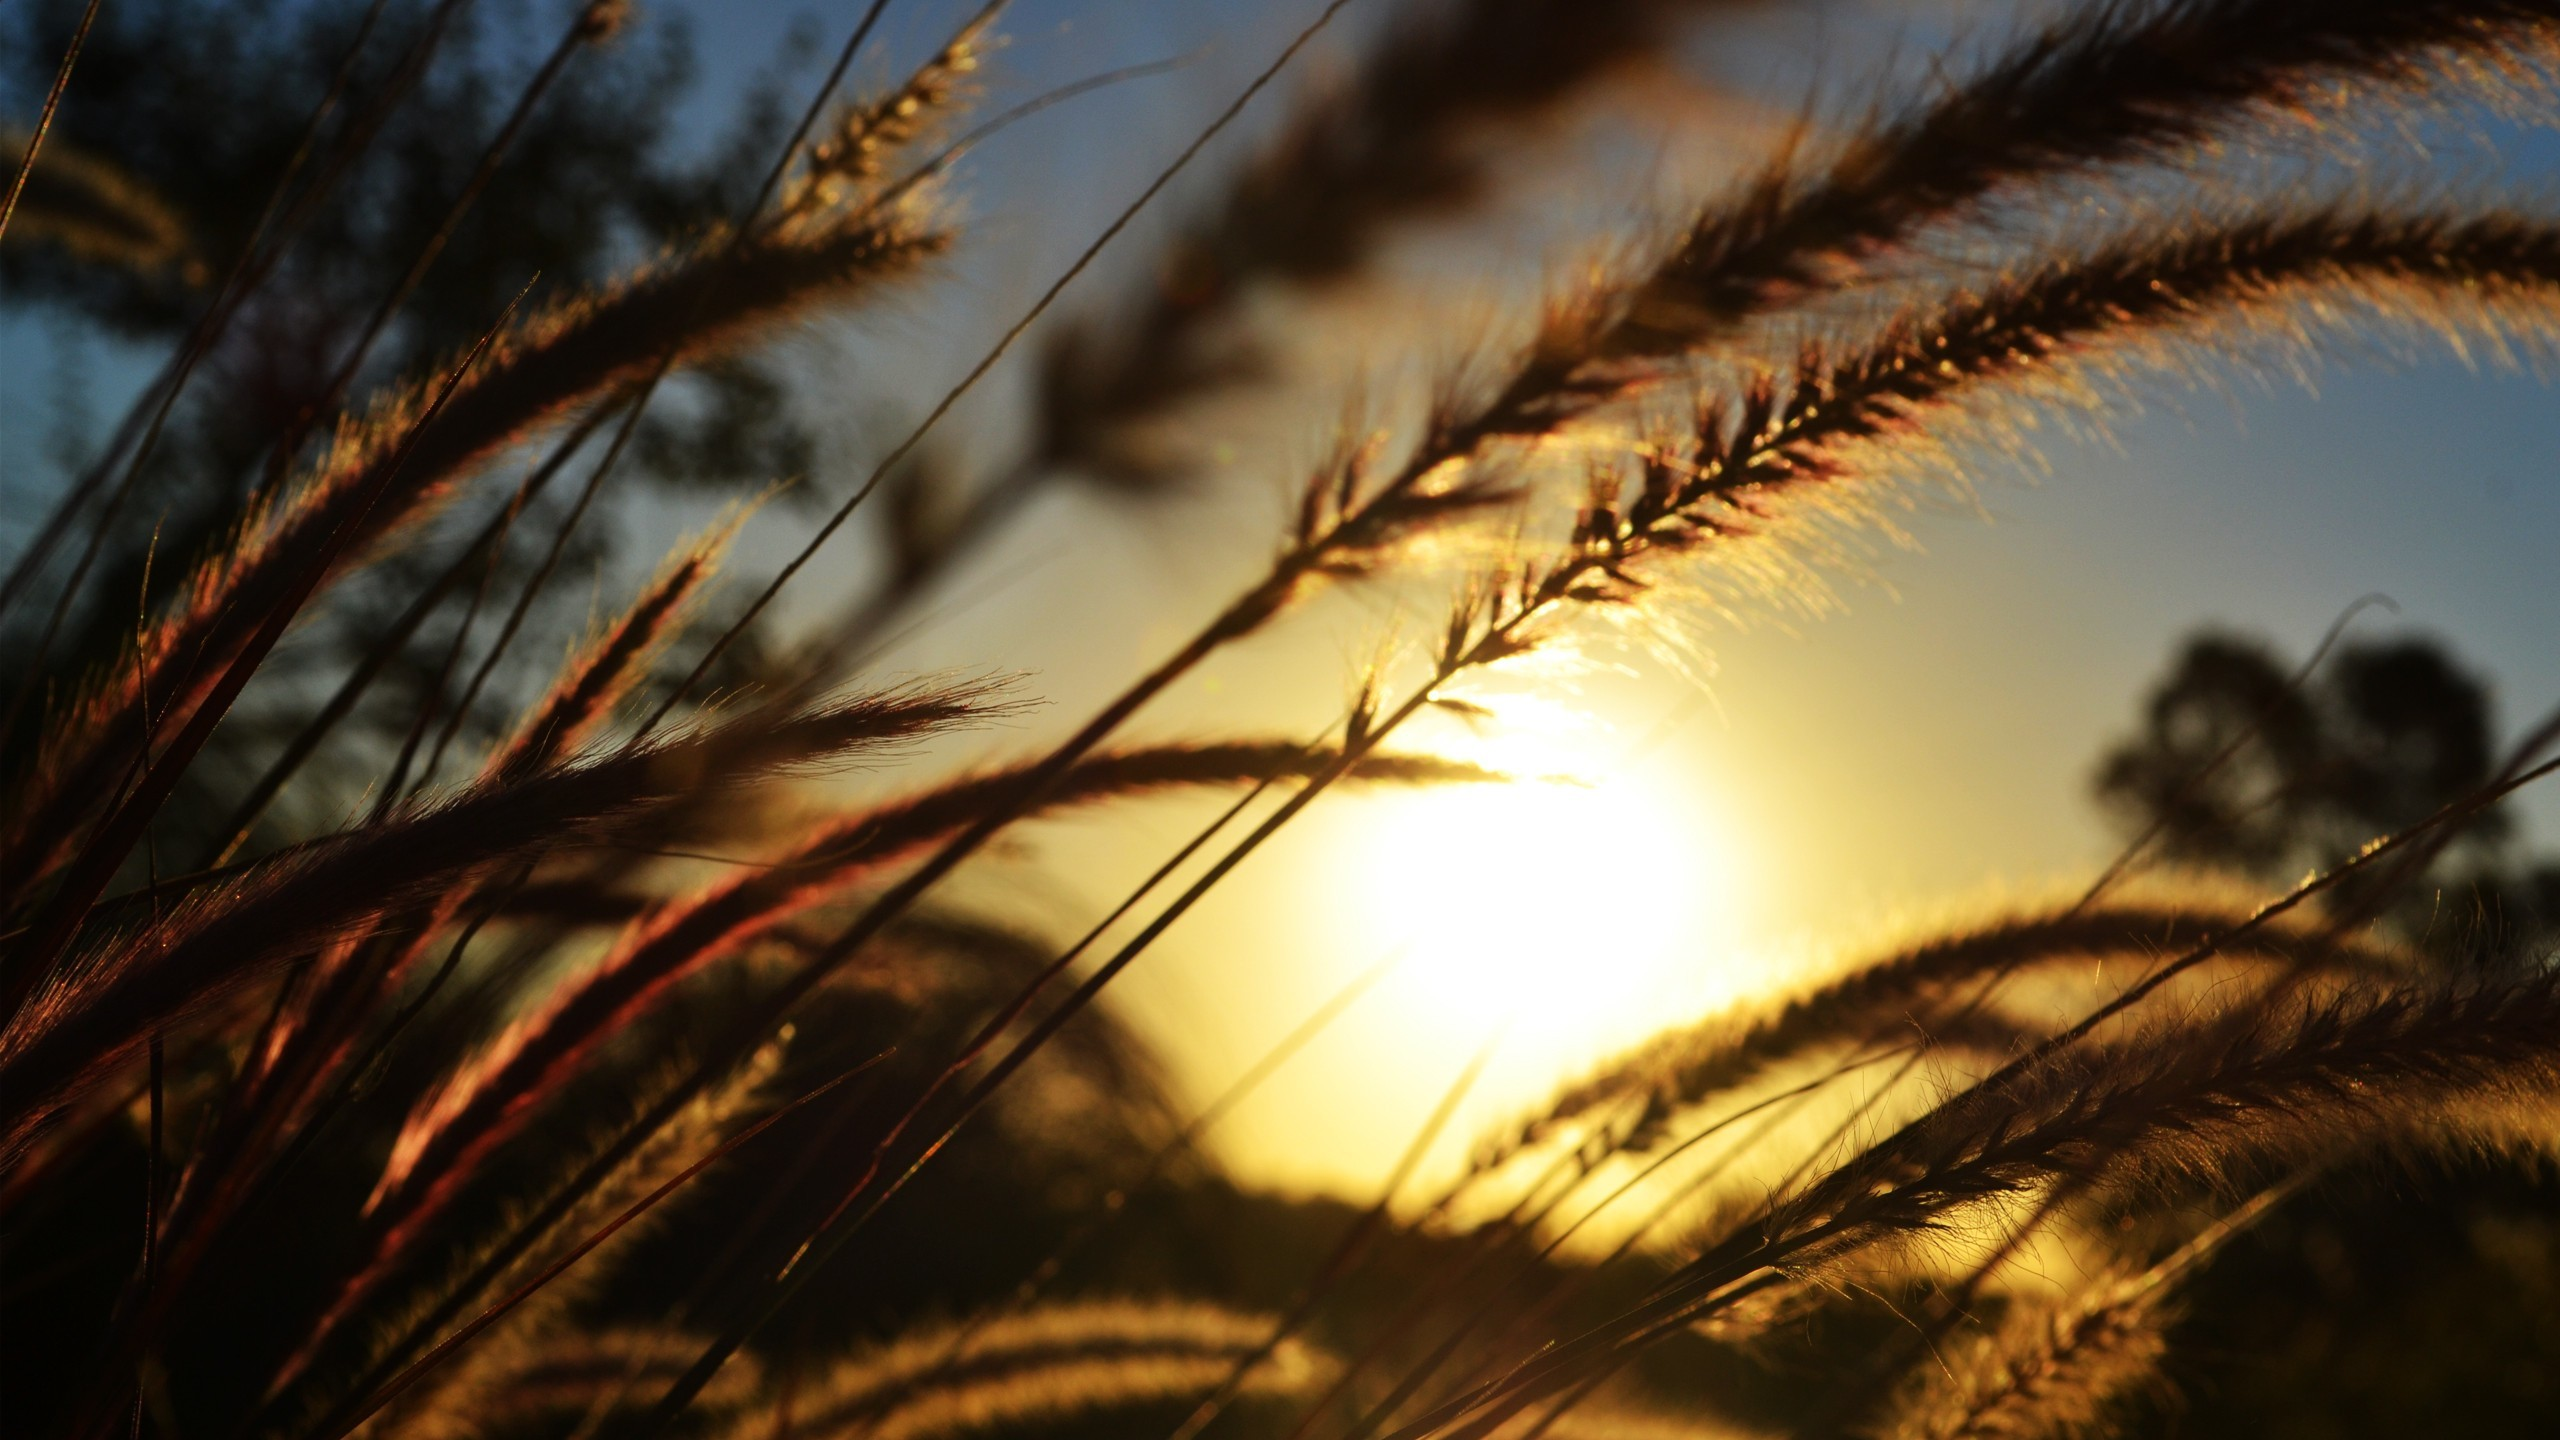 nature sun wheat spikelets HD Wallpaper